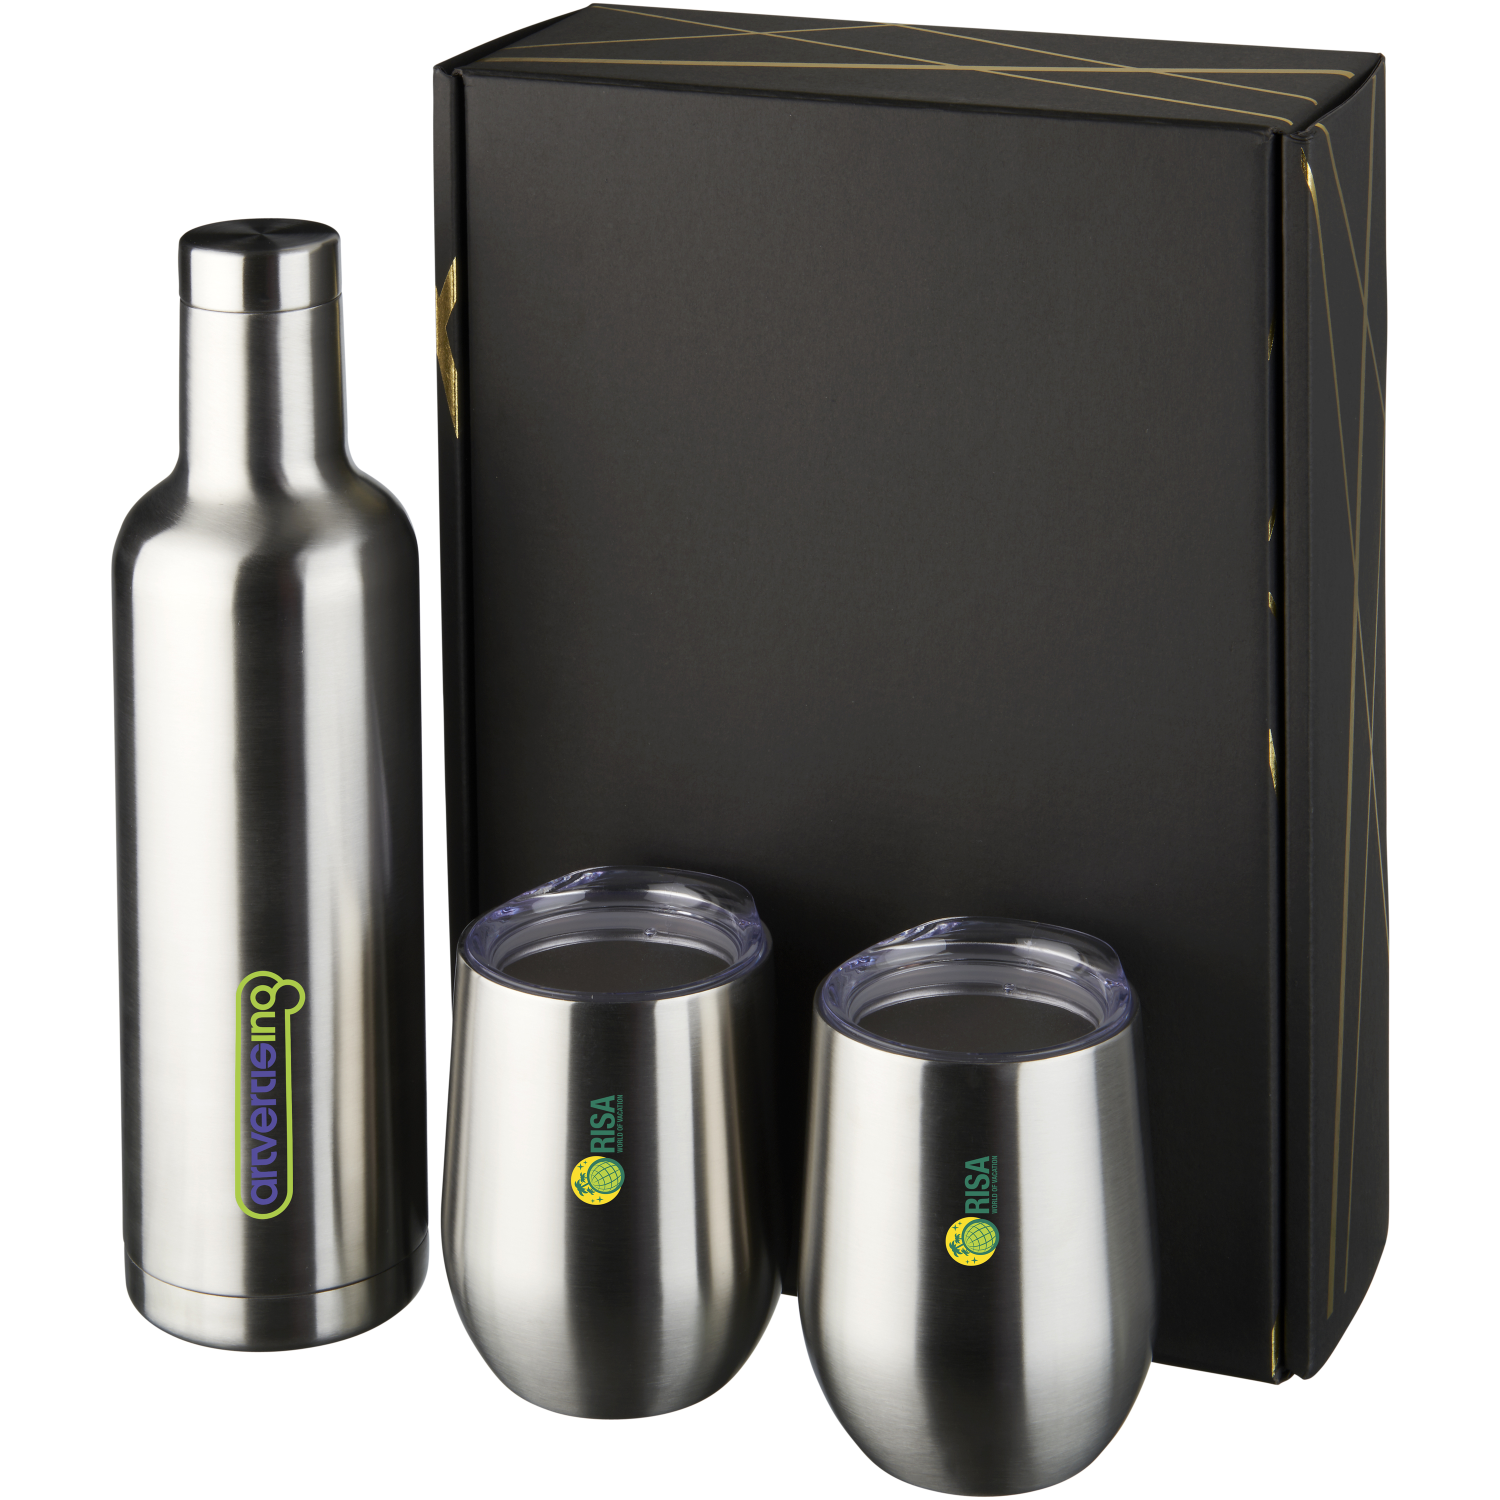 Pinto And Corzo Copper Vacuum Insulated Gift Set